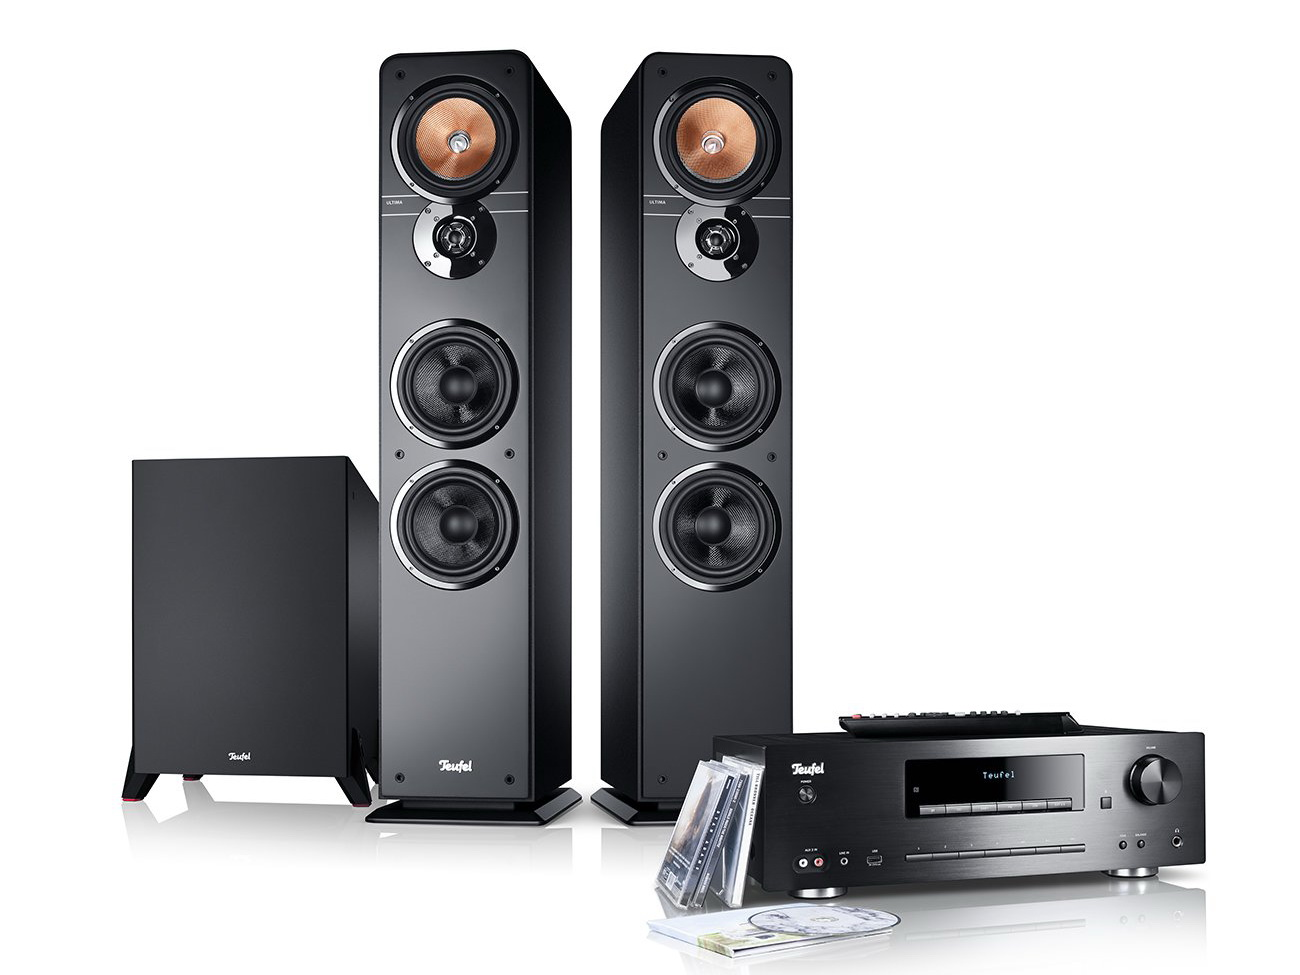 Stereoanlange Ultima 40 Kombo Power Edition zwei Standlautsprecher, Subwoofer und Receiver